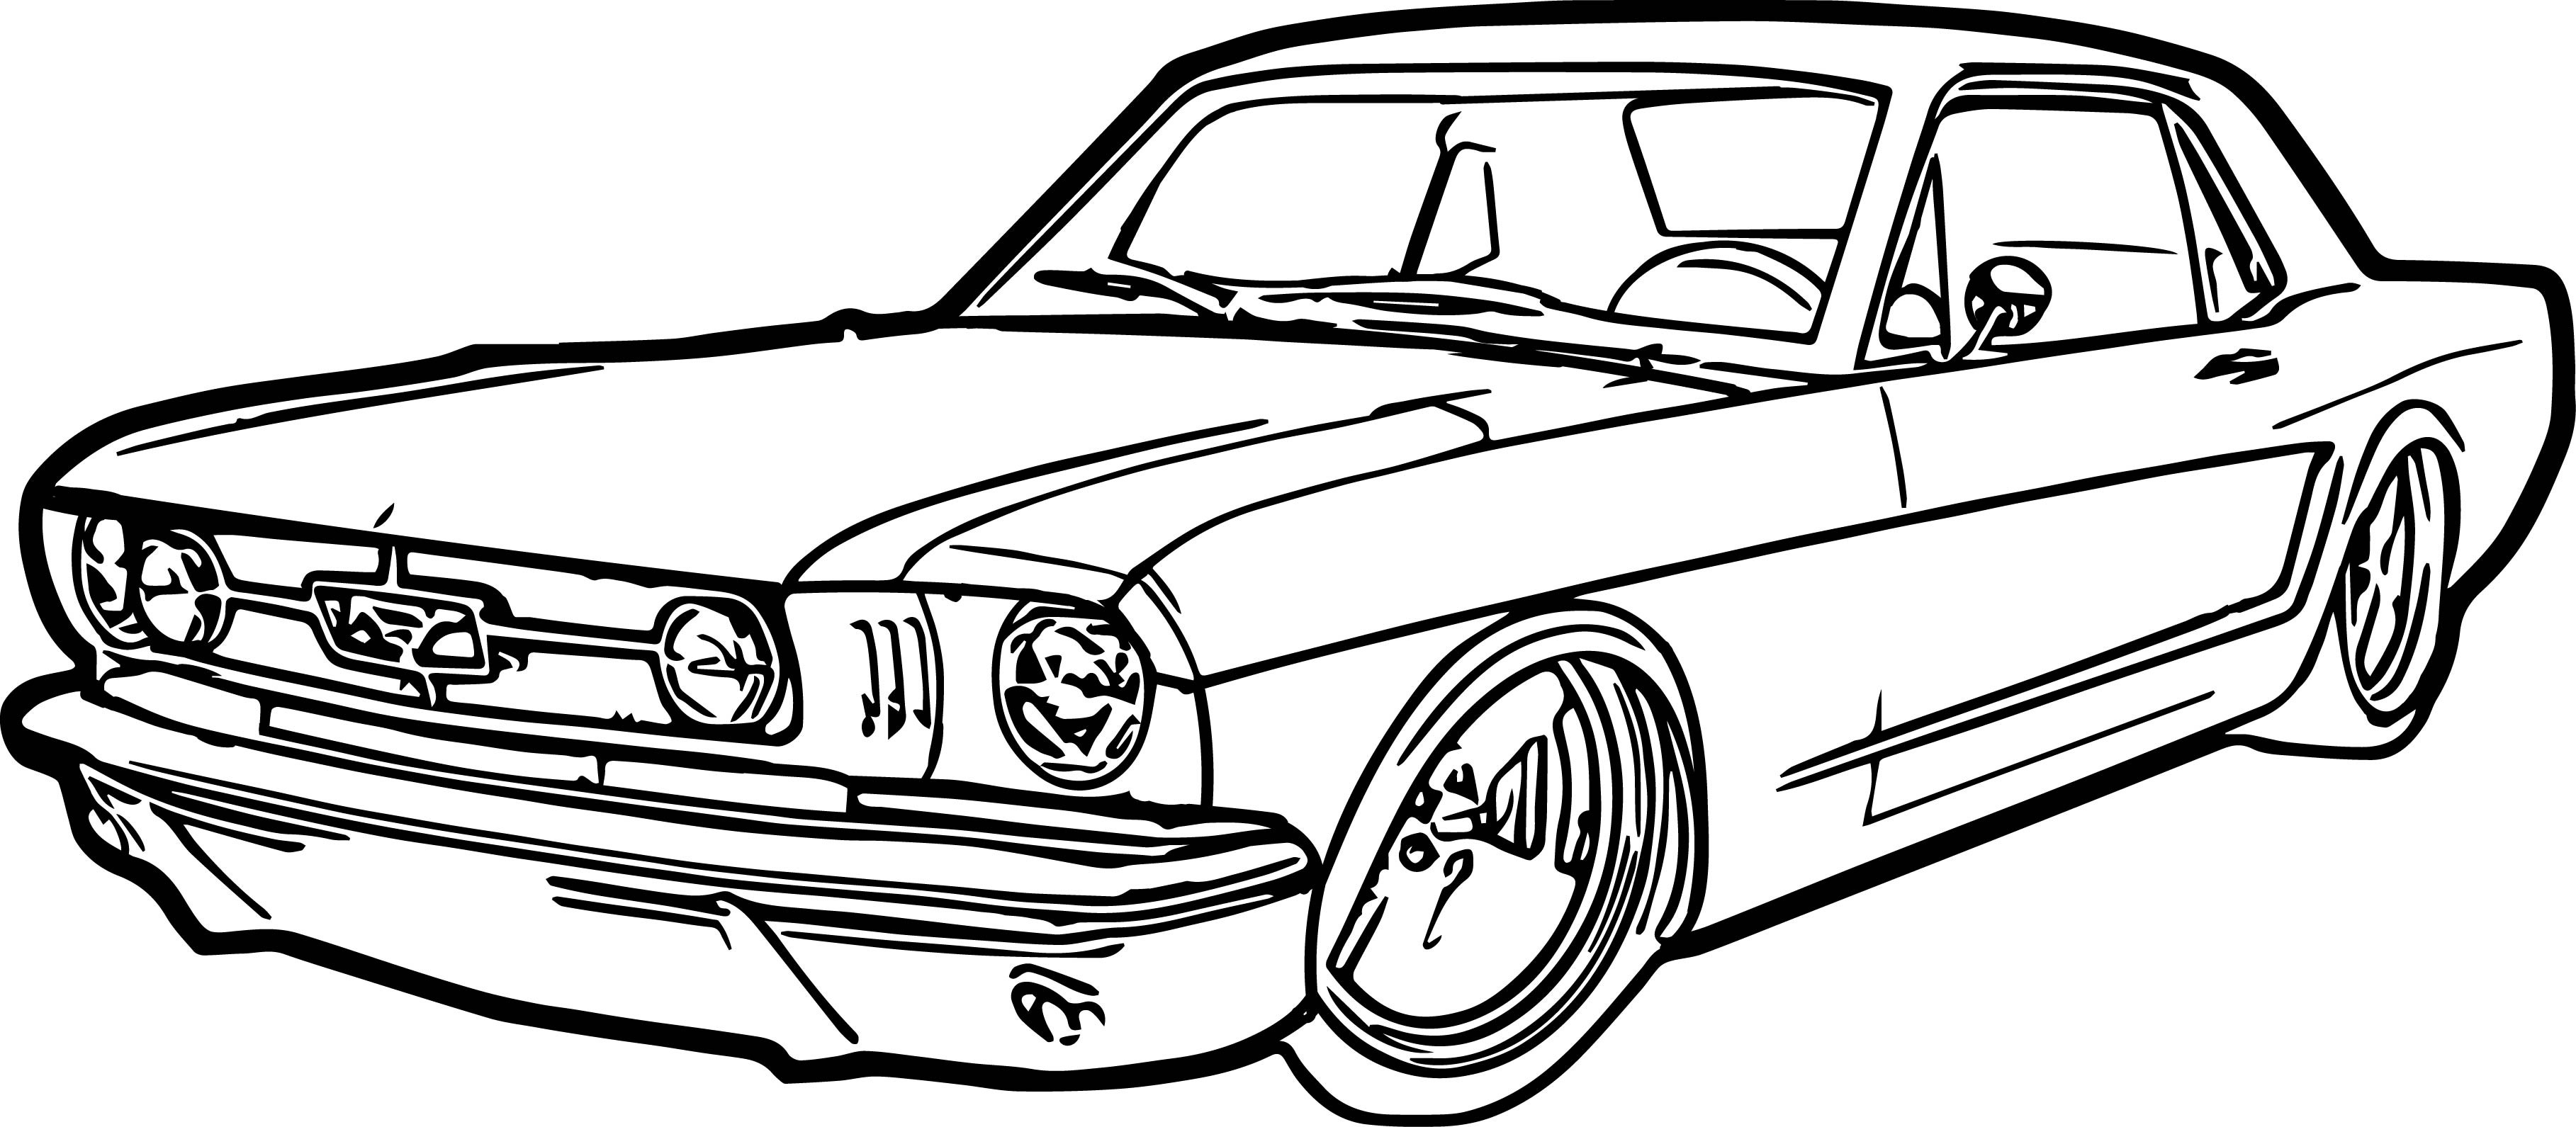 pictures of race cars to color coloring pages racecars coloring pages color to of cars pictures race